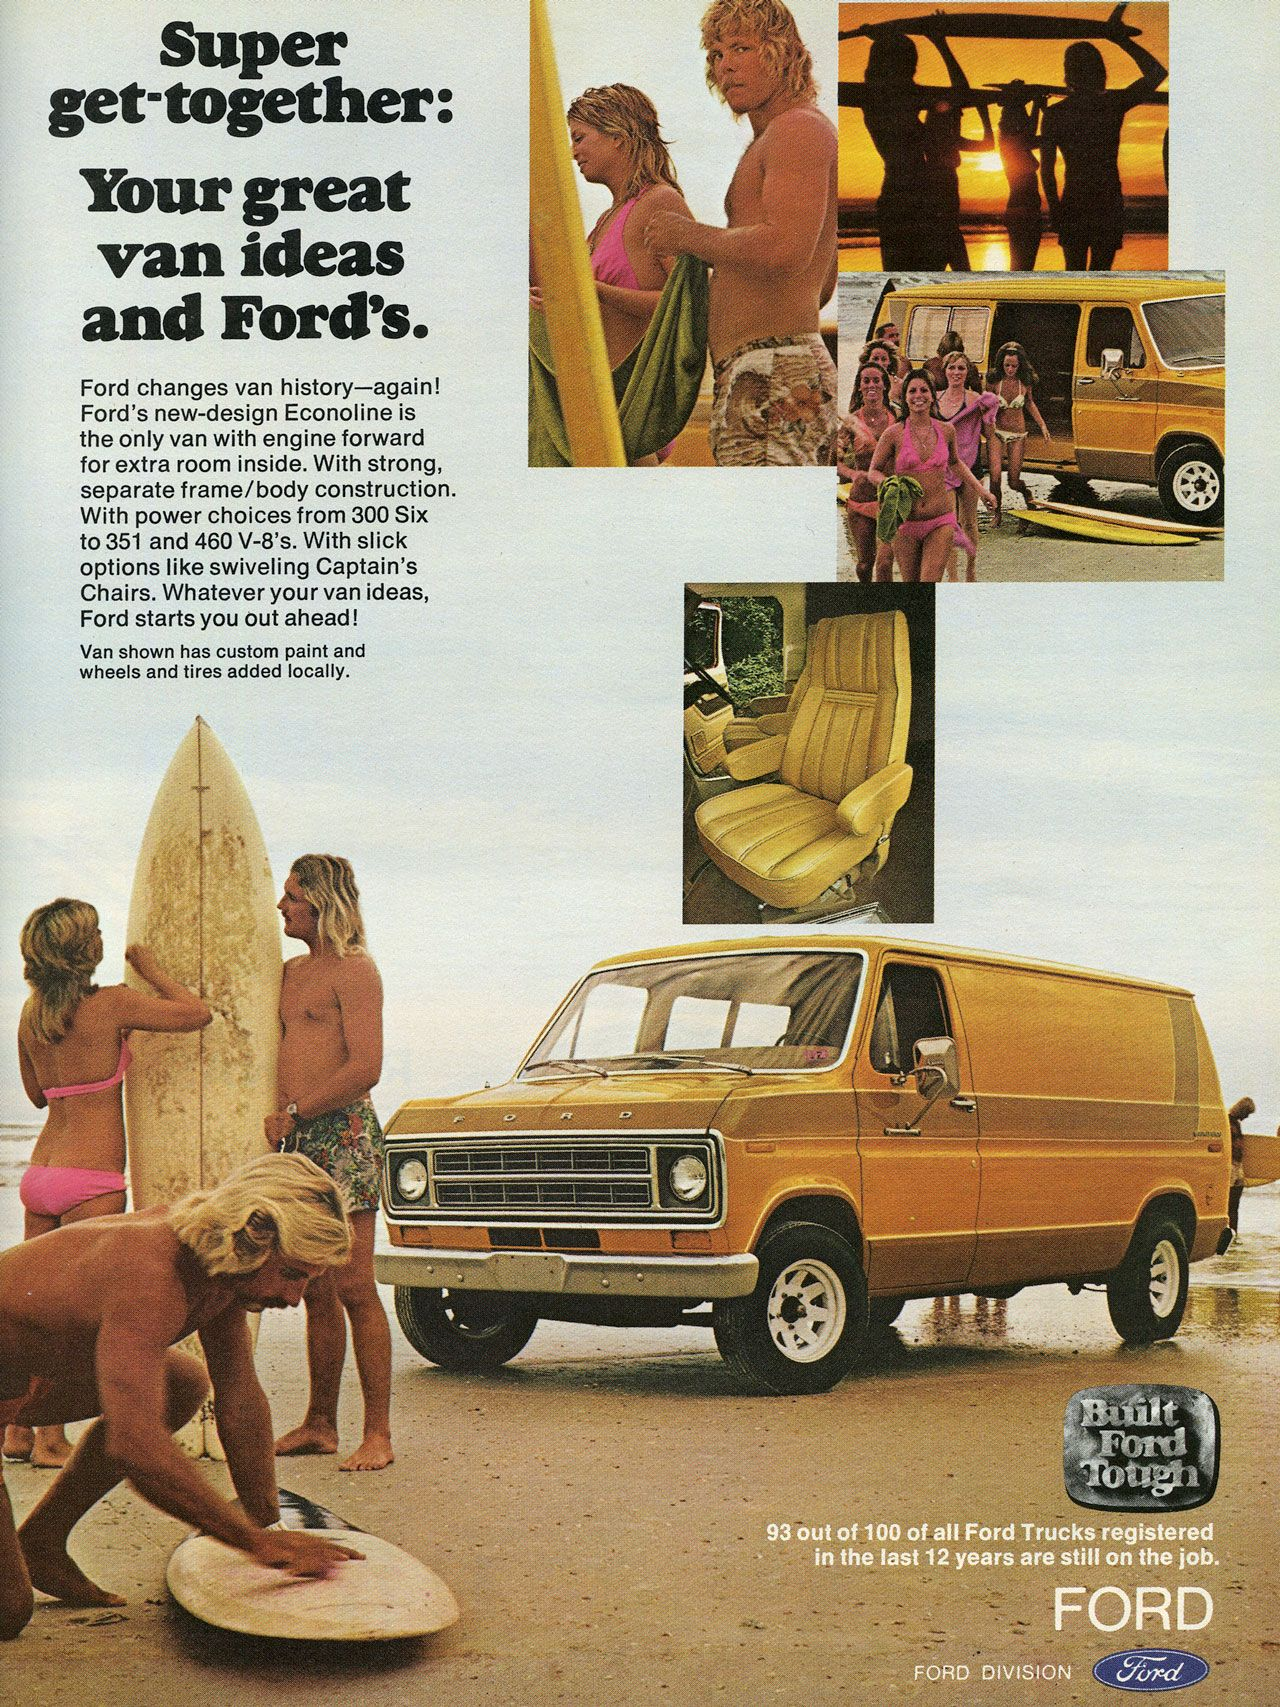 Super get-together: Your great van ideas and Ford's. Ford changes van history—again! Ford's new-design Econoline is the only van with engine forward for extra room inside. With strong, separate frame/body construction. With power choices from 300 Six to 351 and 460 V-8's. With slick options like swiveling Captain's Chairs. Whatever your van ideas, Ford starts you out ahead! Van shown has custom paint and wheels and tires added locally. 93 out of 100 of all Ford Trucks Altered in the last 12 years are still on the job.